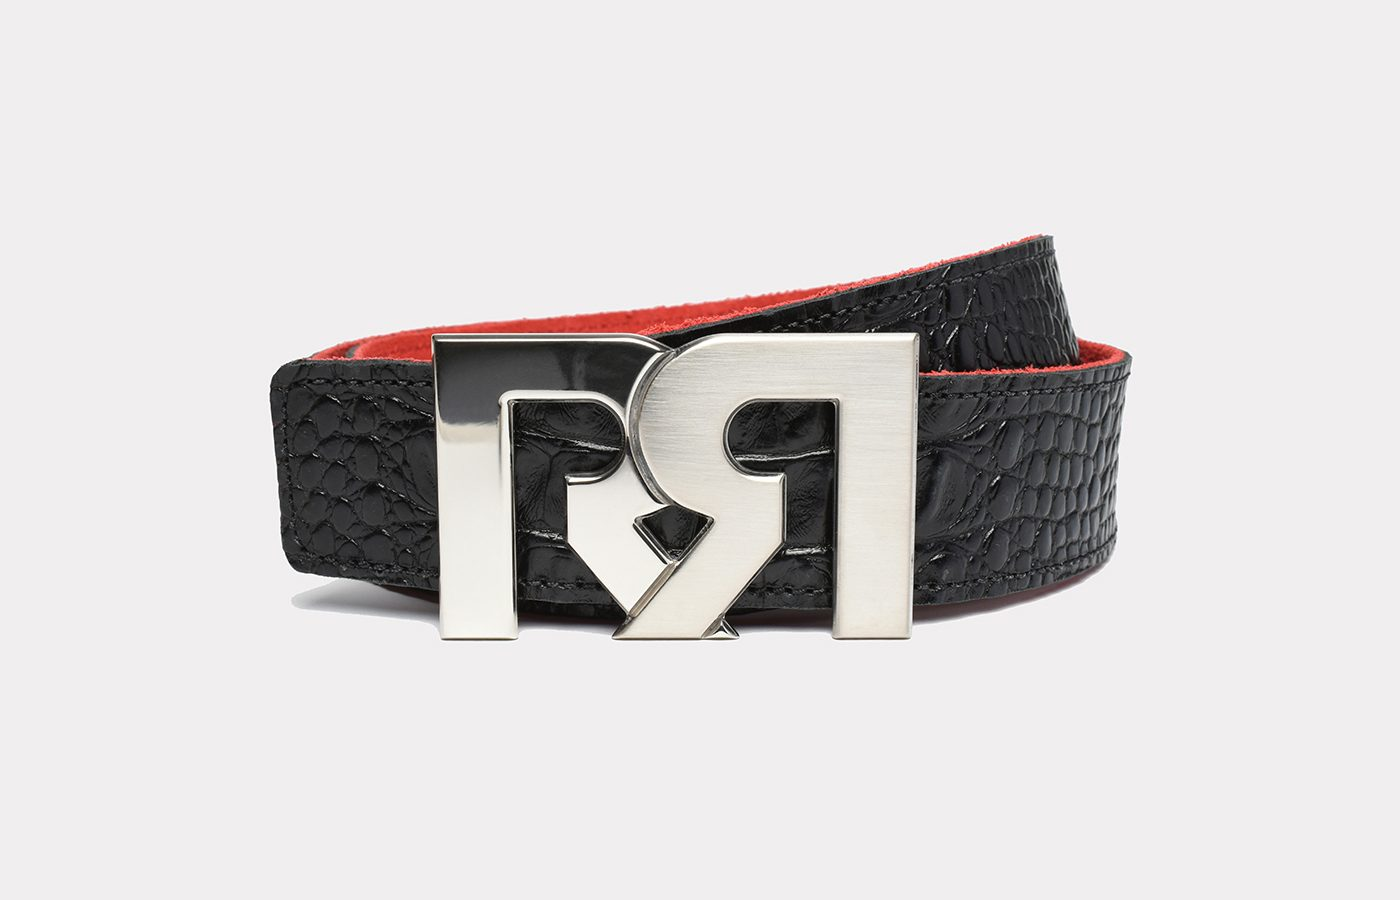 RR Designer belts two-tone Palladium plated with Croc Embossed Leather strap